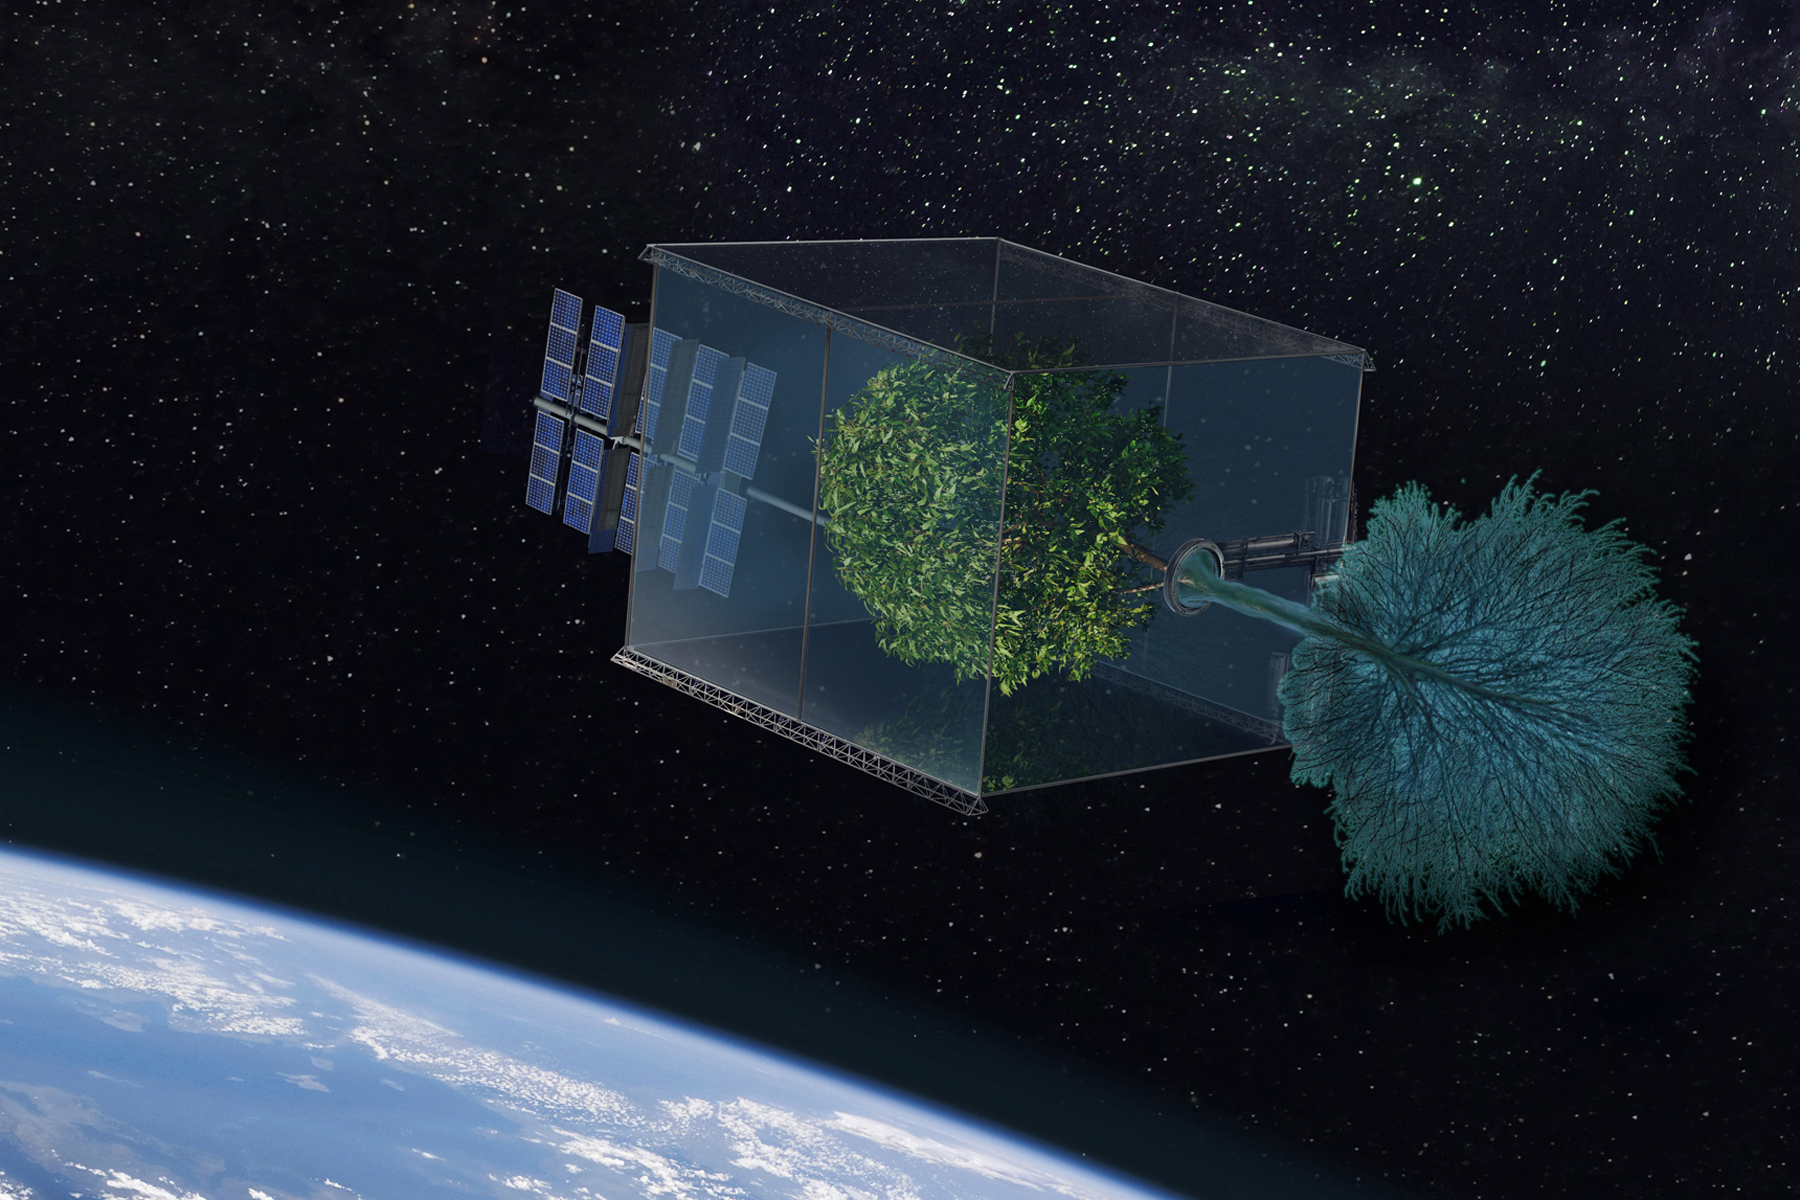 Can A Tree Grow In Space?